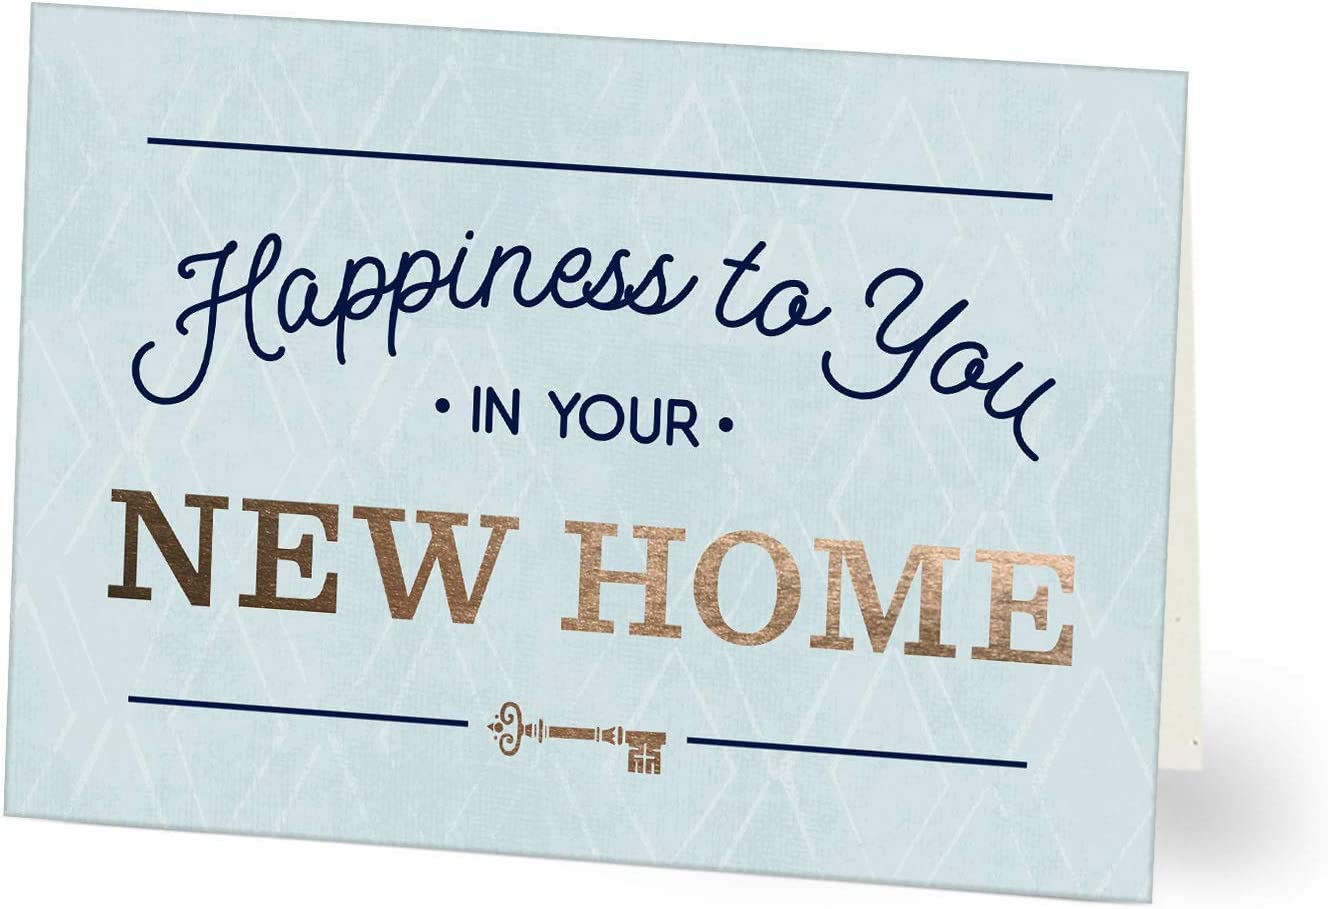 Hallmark Business Congrats New Home Cards for Realtors, Real Estate Agents, Insurance Agents, and Bankers (Happiness to You) (Pack of 25 Greeting Cards)